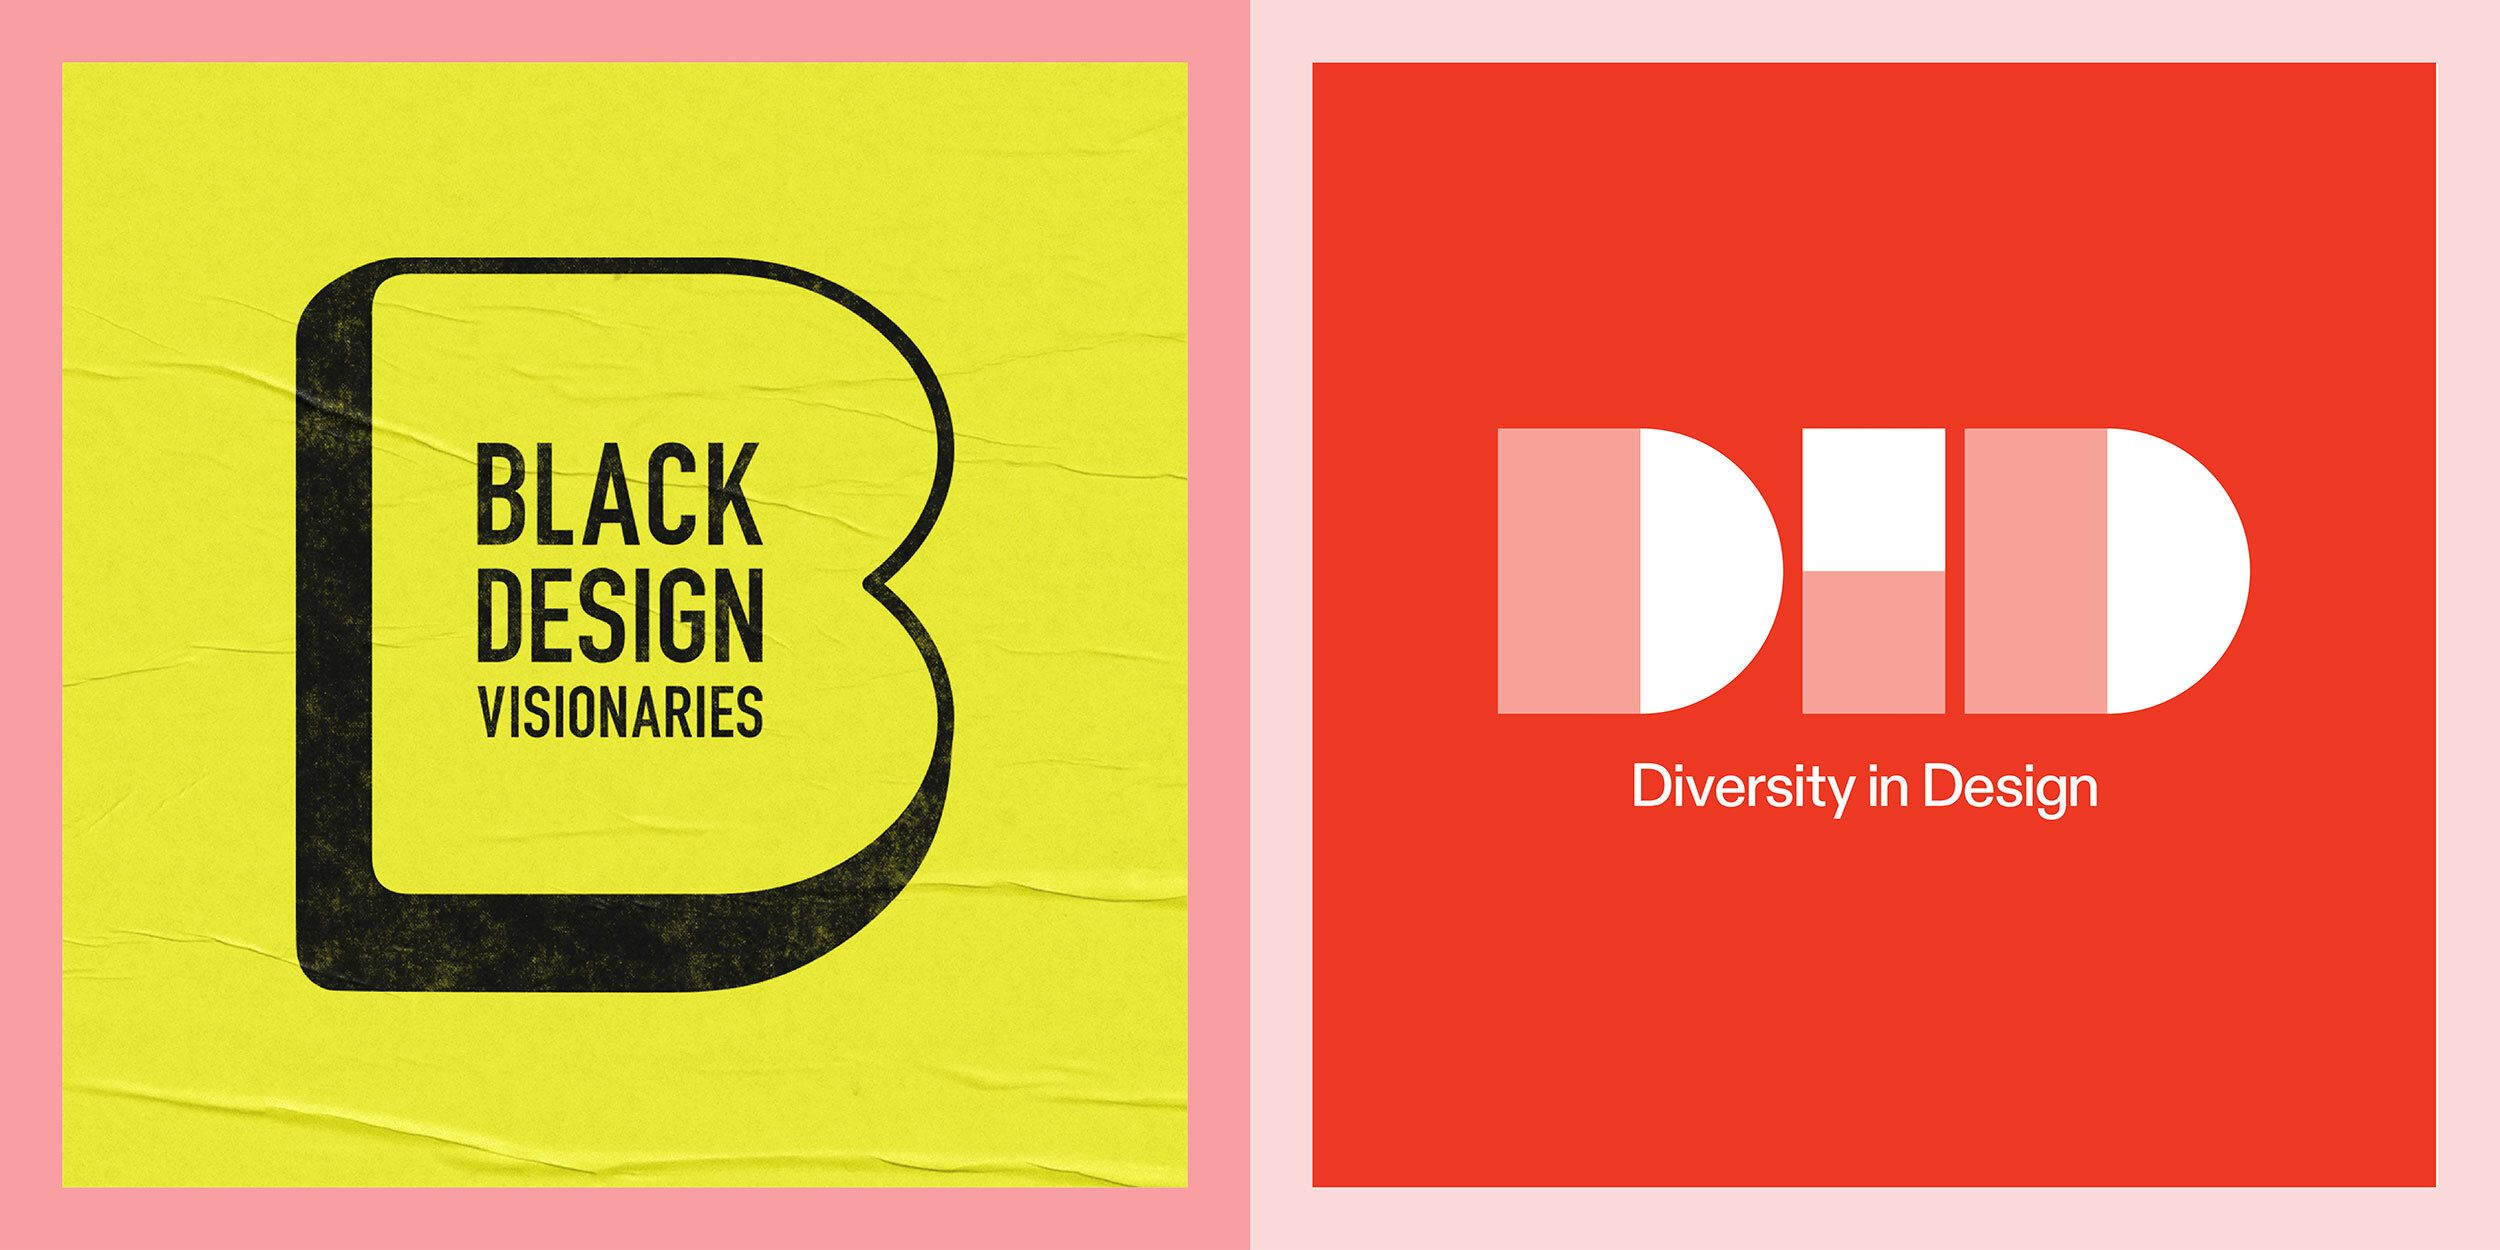 Two Brand-New Initiatives Aim to Support the Next Wave of Black Design Talent